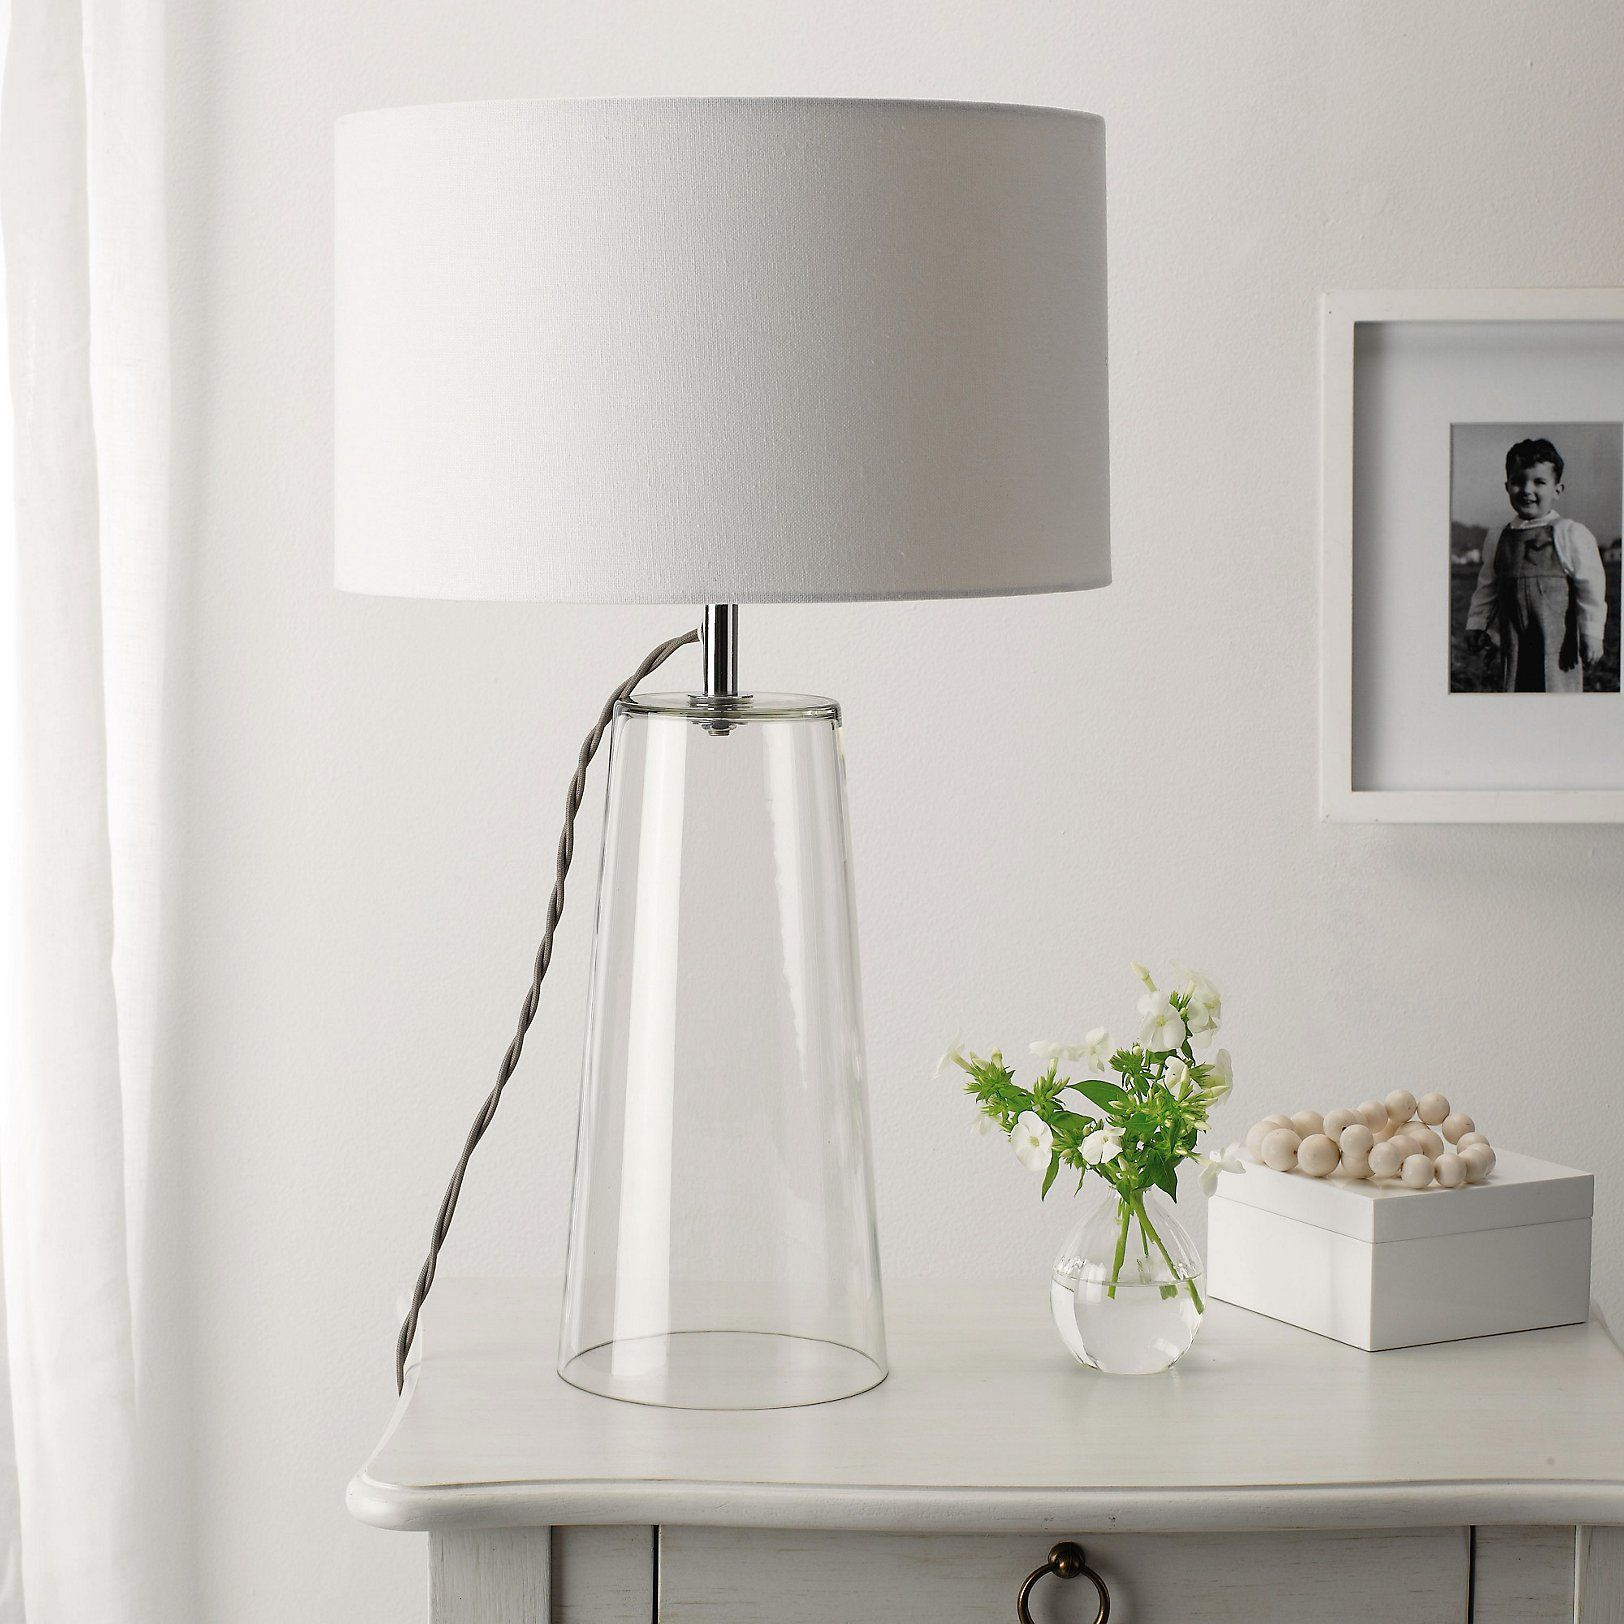 Bowery Table Lamp Table Lamps The White Company Table Lamp Glass Lamp Base Table Lamps Uk